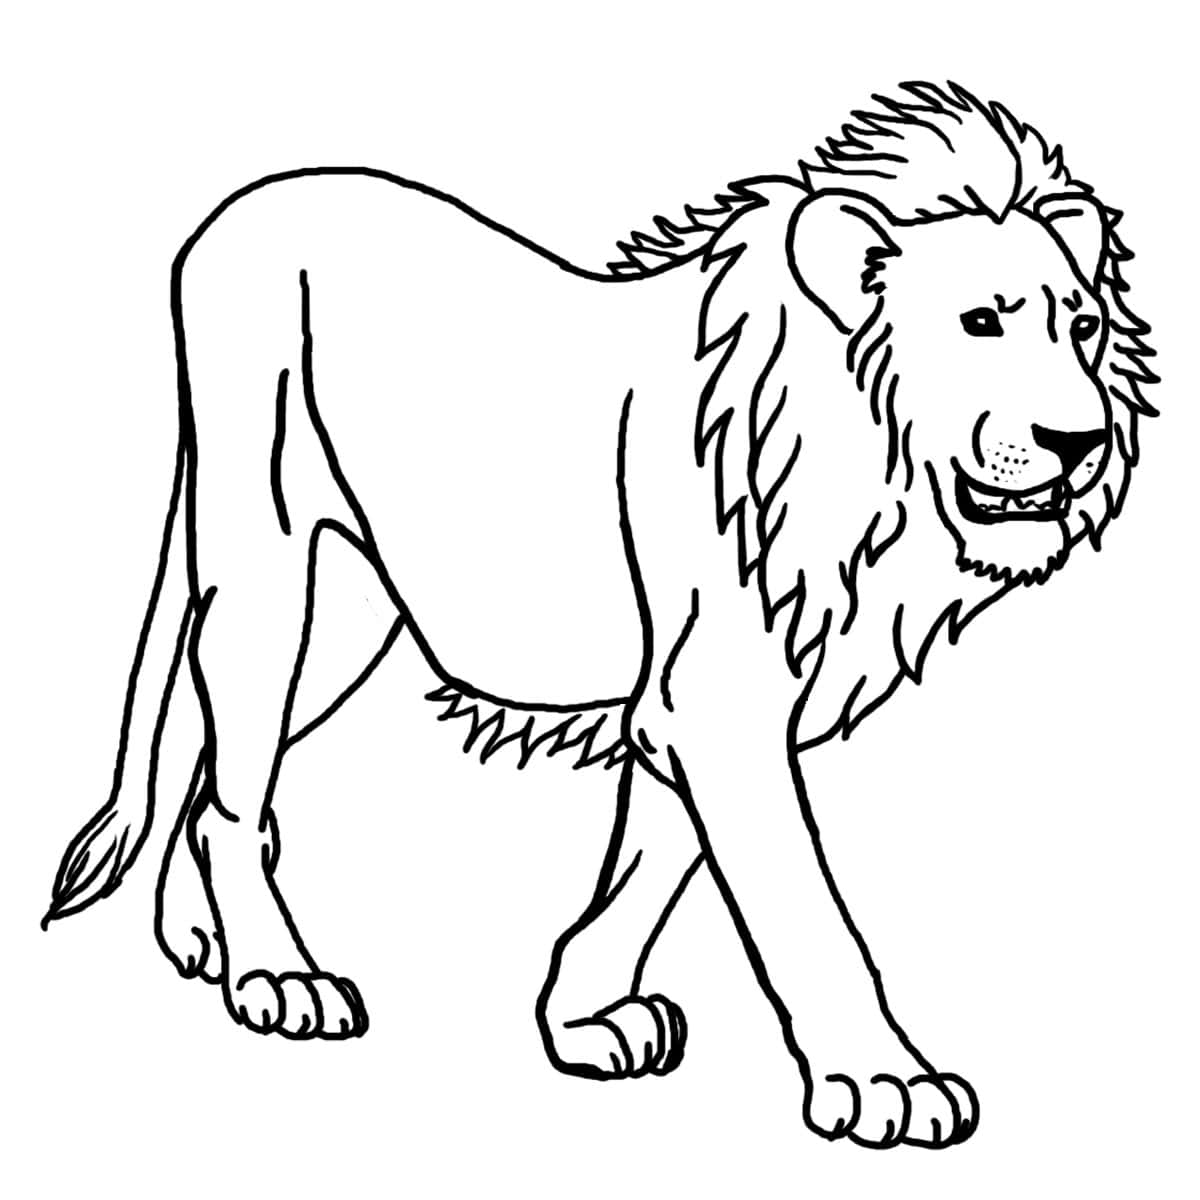 animal outlines to color free giraffe coloring pages animal color outlines to